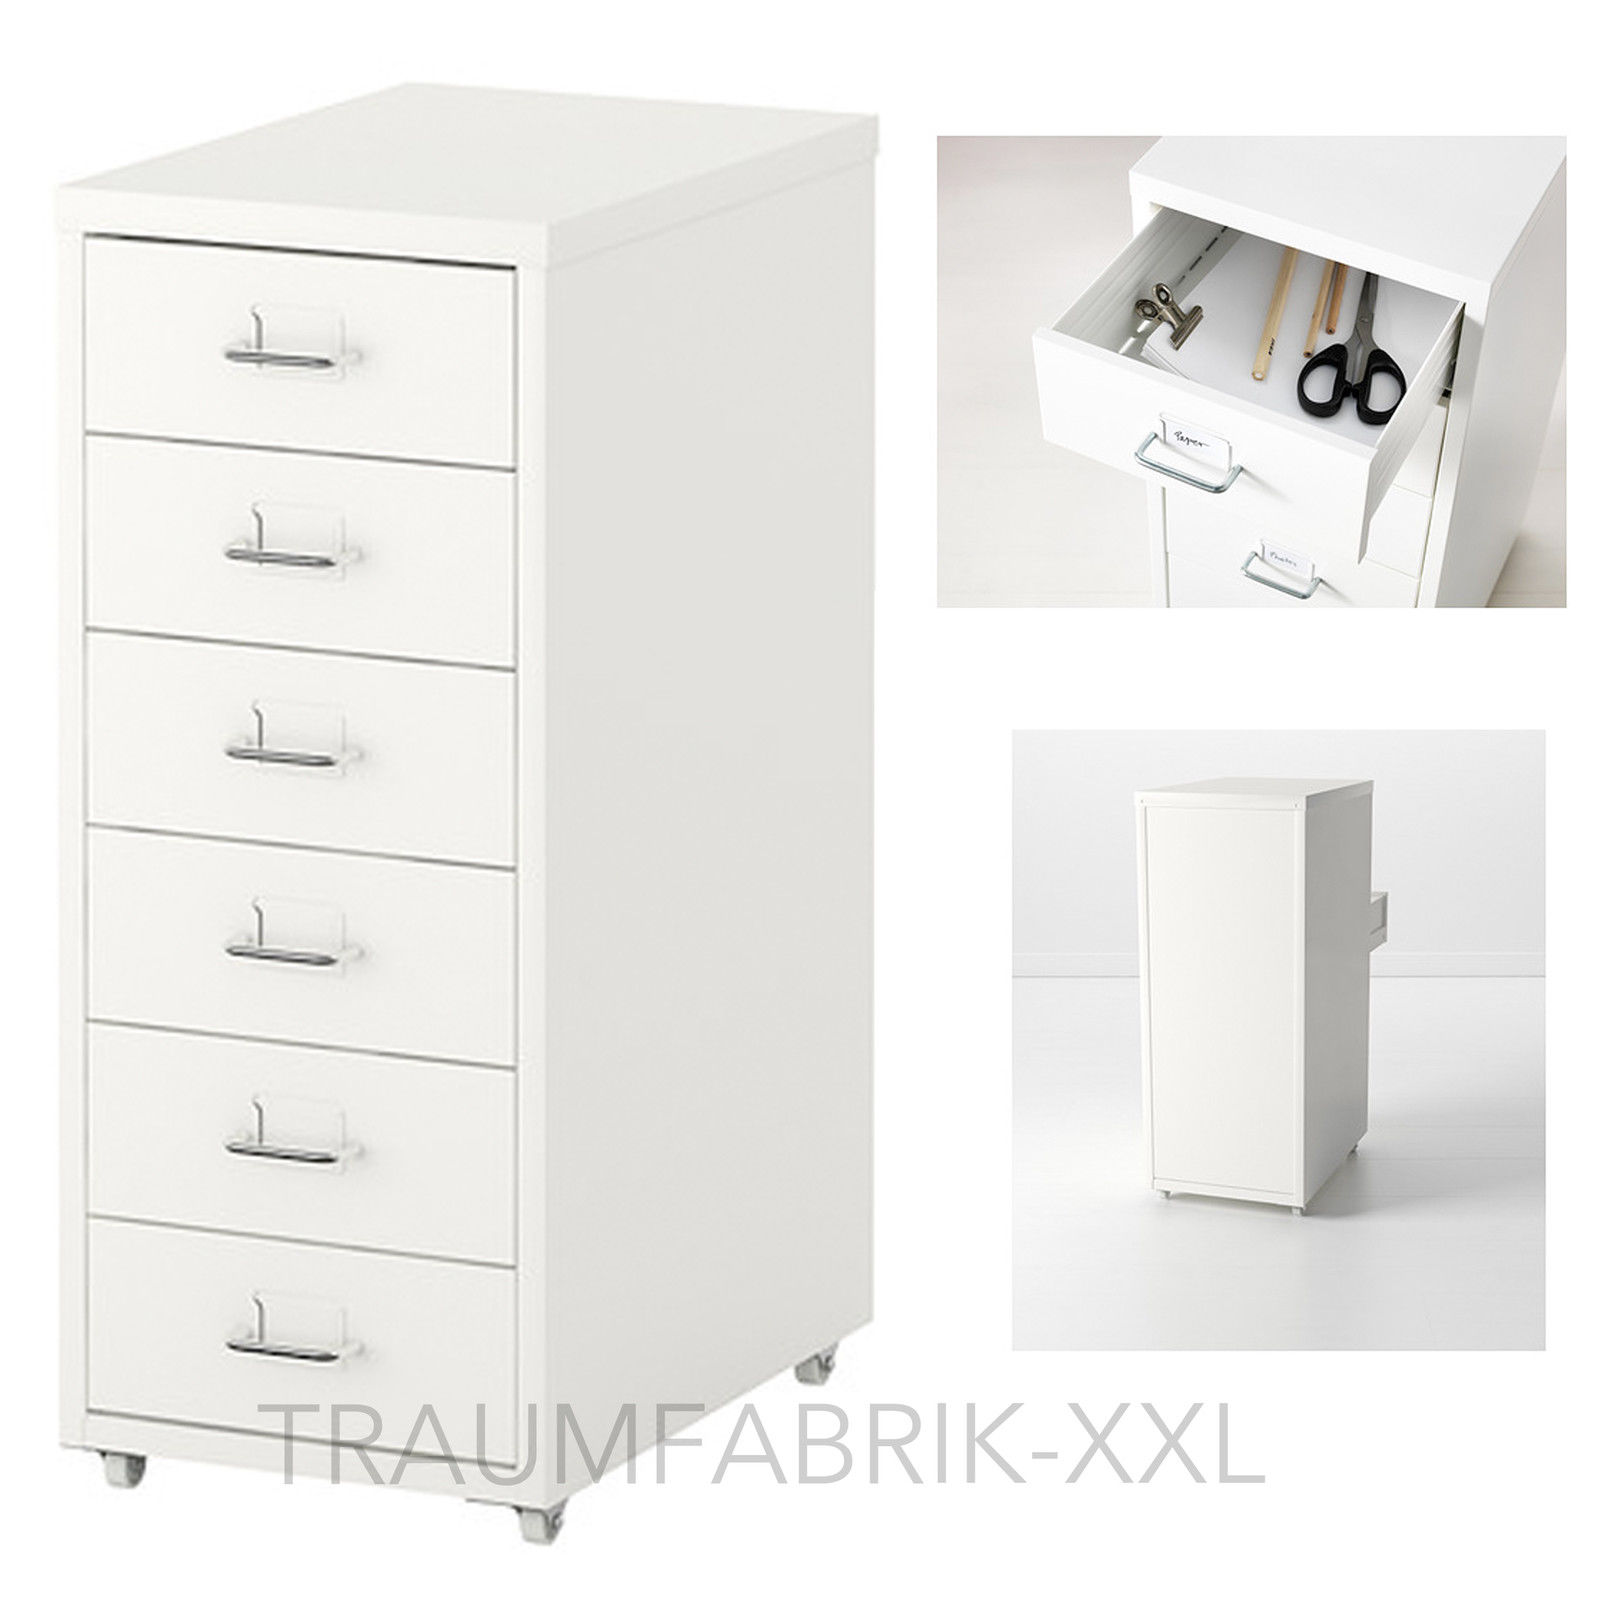 broschrank gallery of stilvolle ikea broschrank abschliebar erik with broschrank perfect cheap. Black Bedroom Furniture Sets. Home Design Ideas